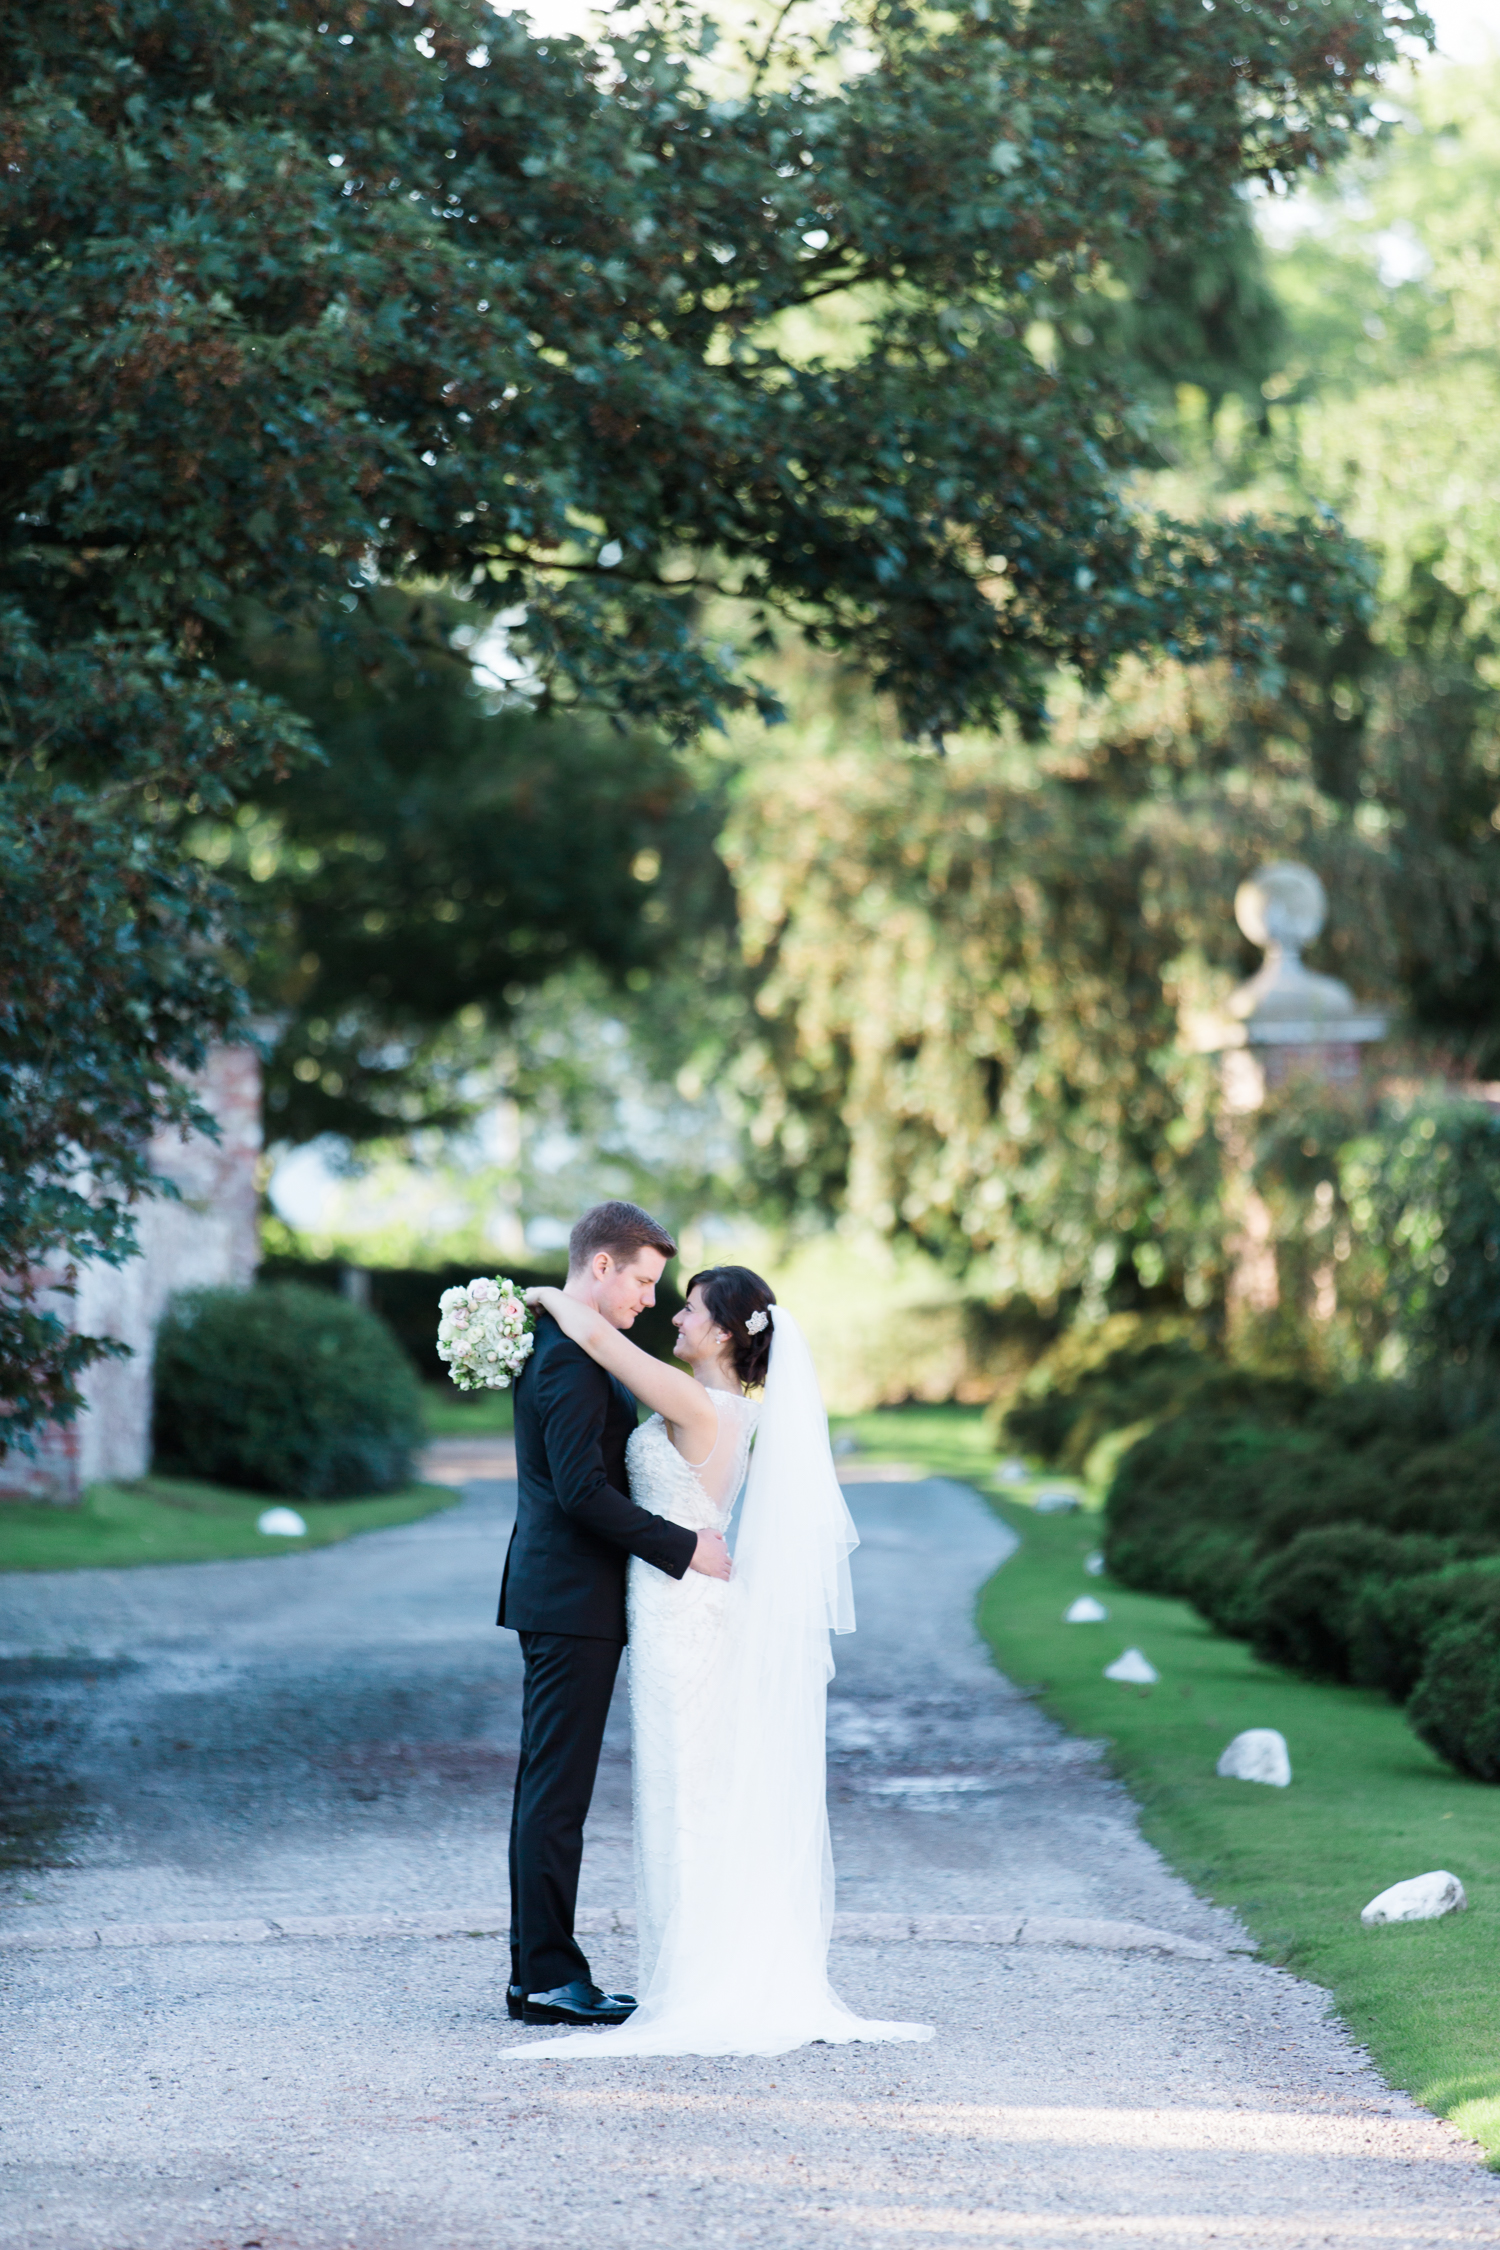 Fine art wedding photographer at Iscoyd Park in the UK photo